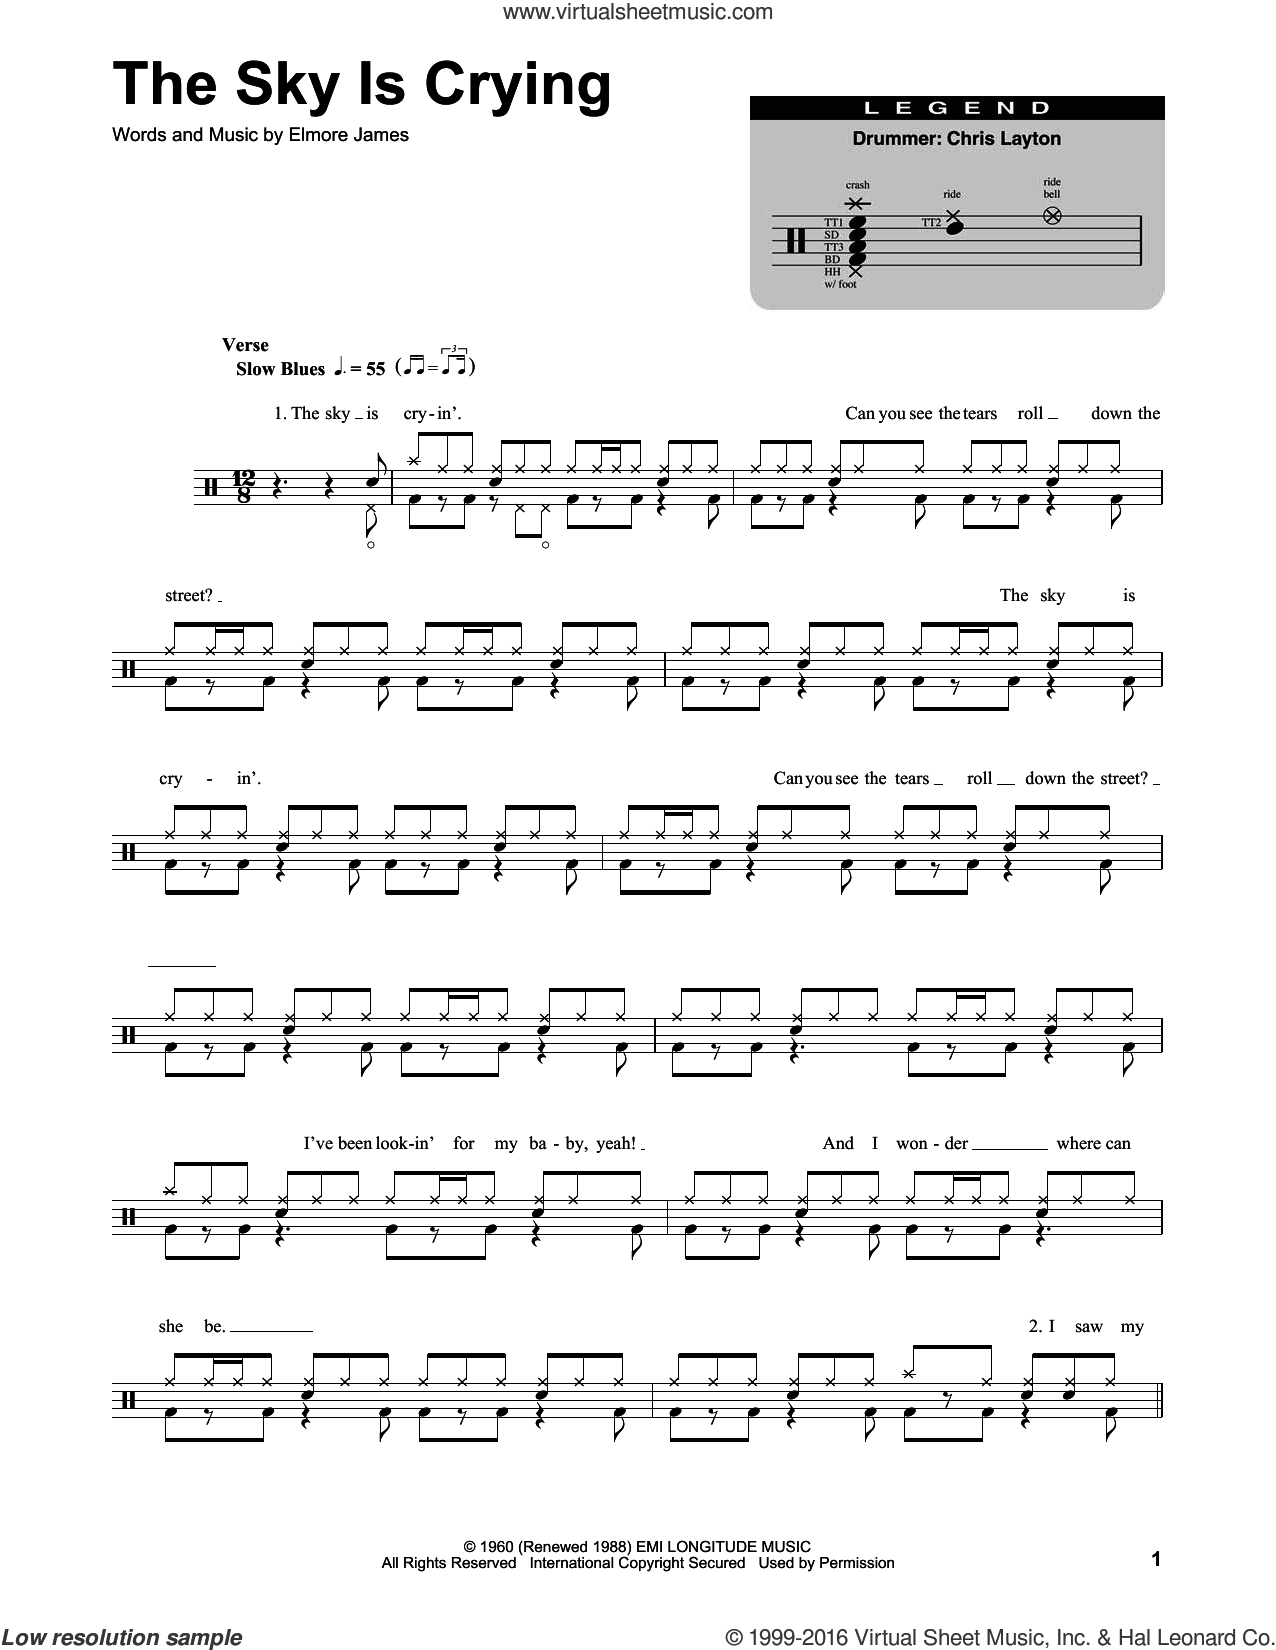 The Sky Is Crying sheet music for drums by Stevie Ray Vaughan, Eric Clapton and Elmore James, intermediate skill level